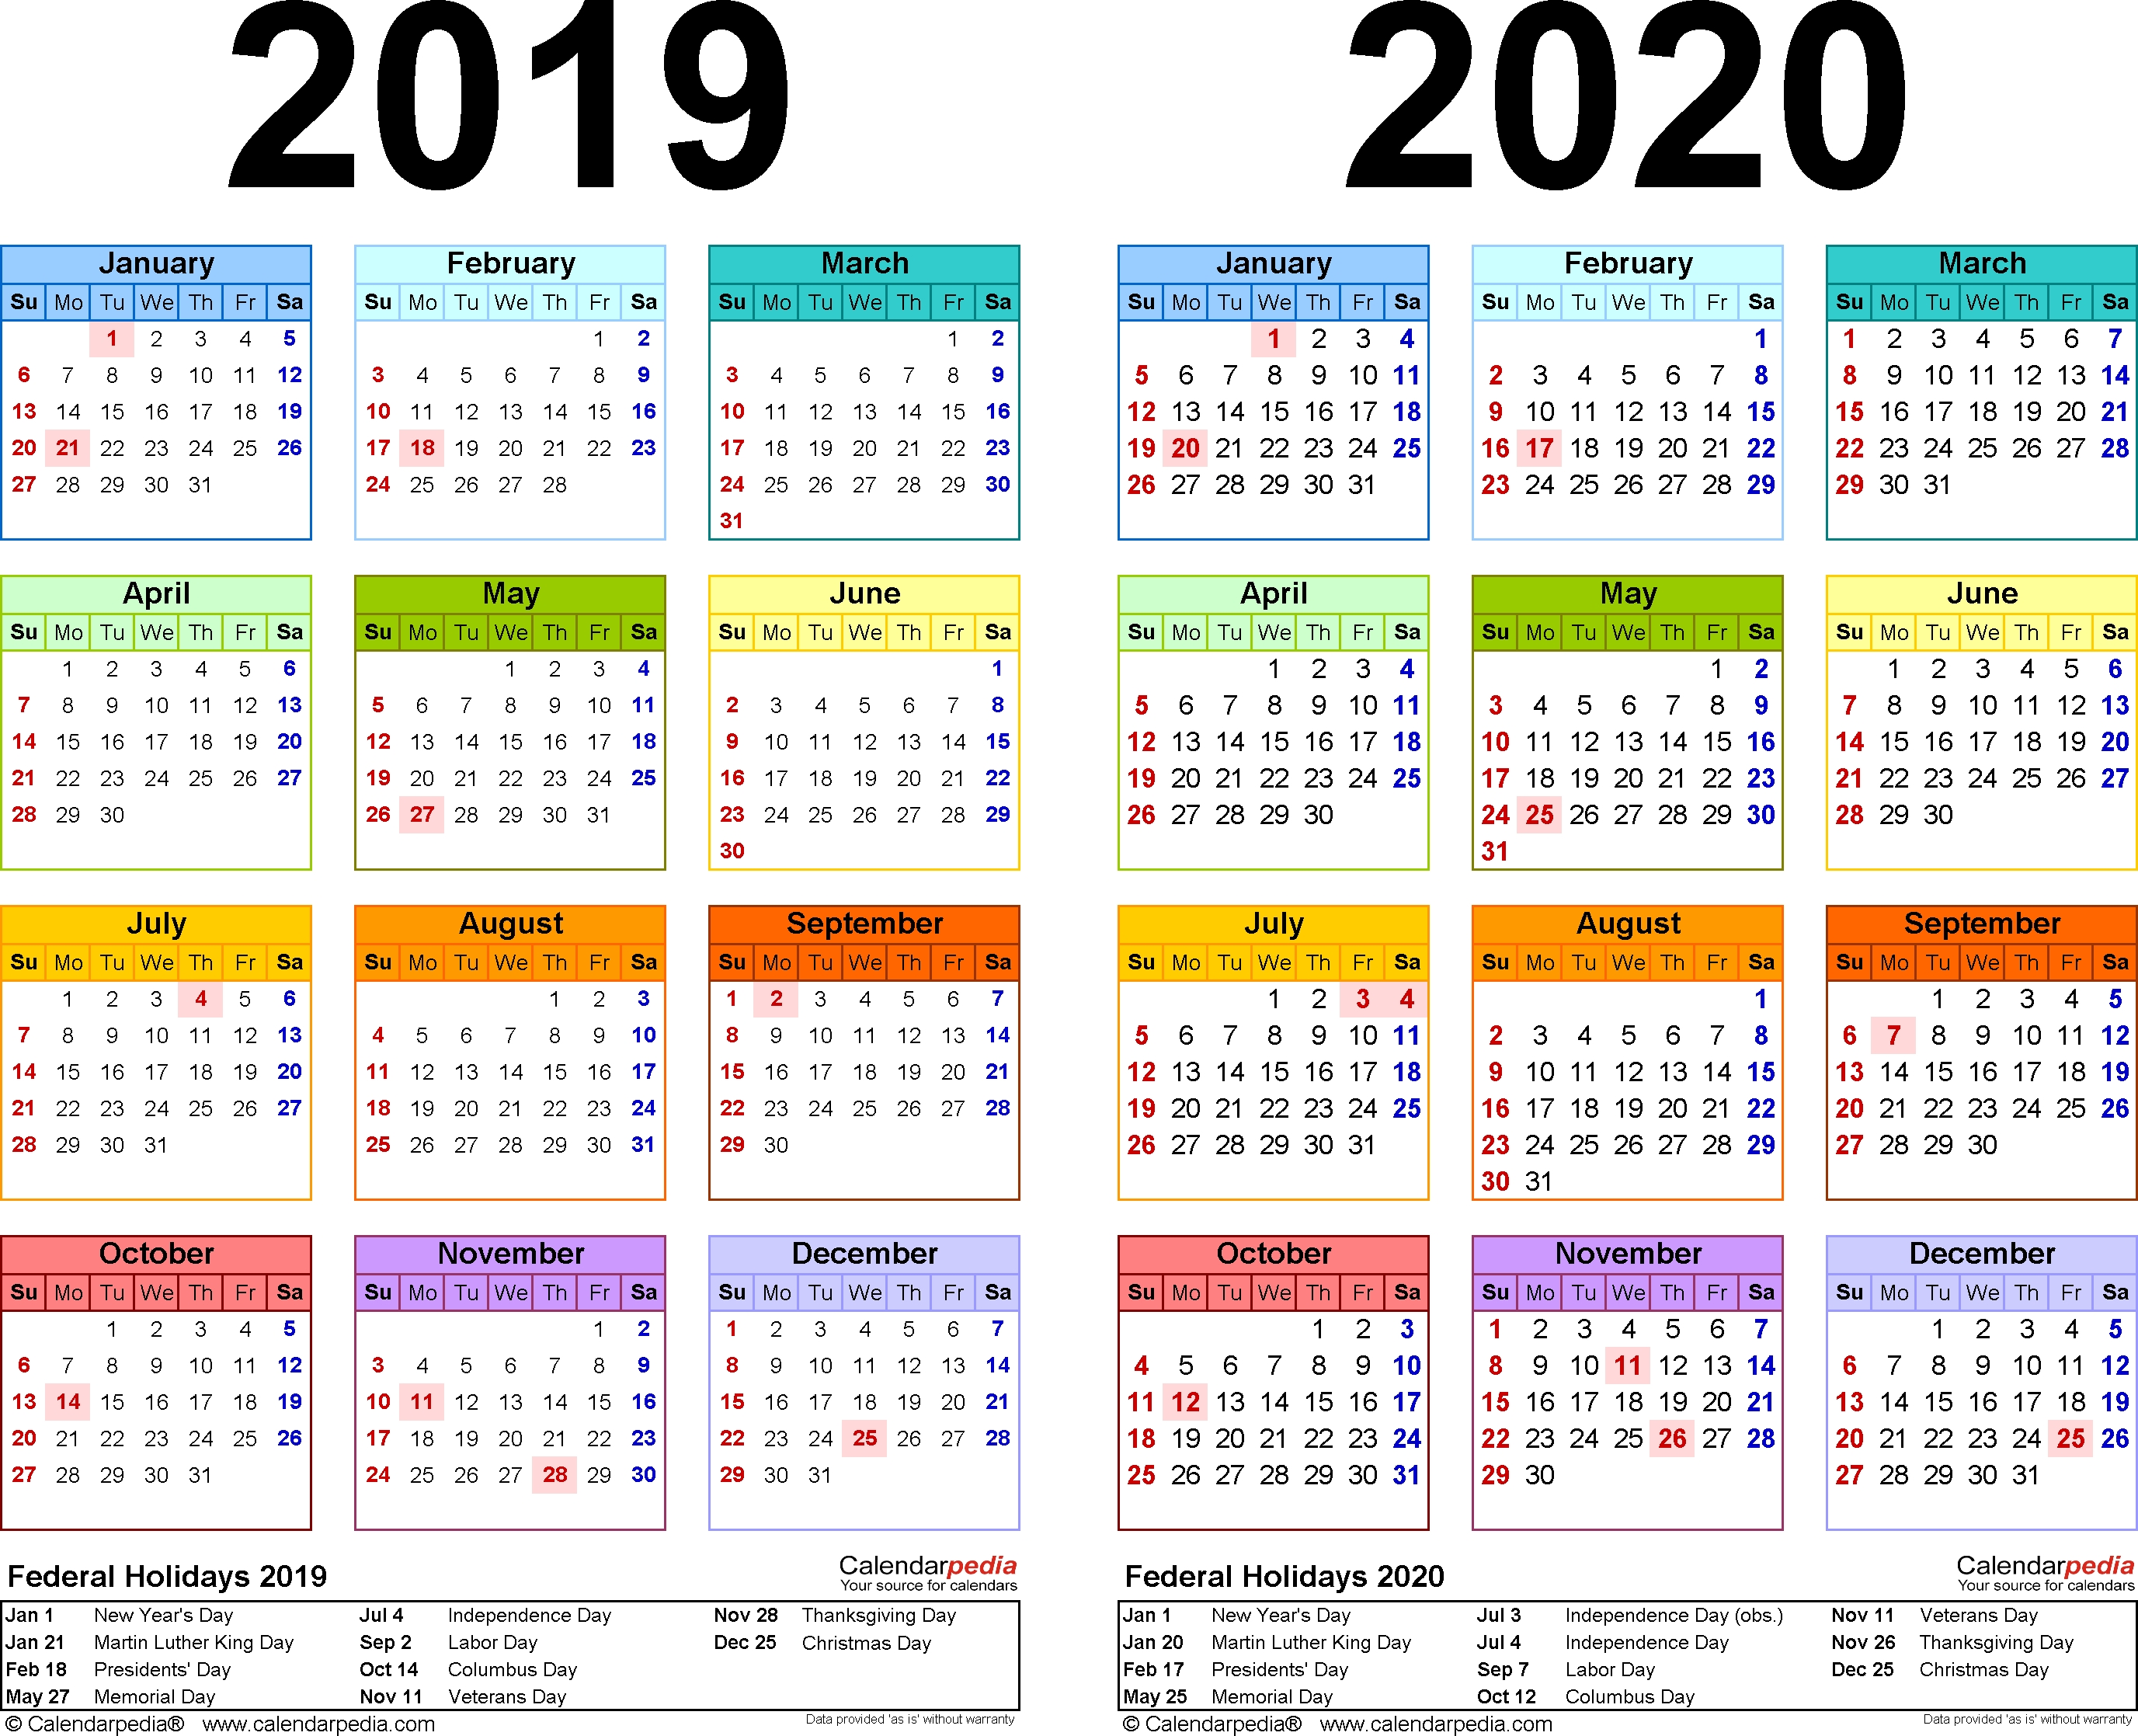 2019-2020 Calendar - Free Printable Two-Year Pdf Calendars pertaining to 5X 7 Printable 2019-2020